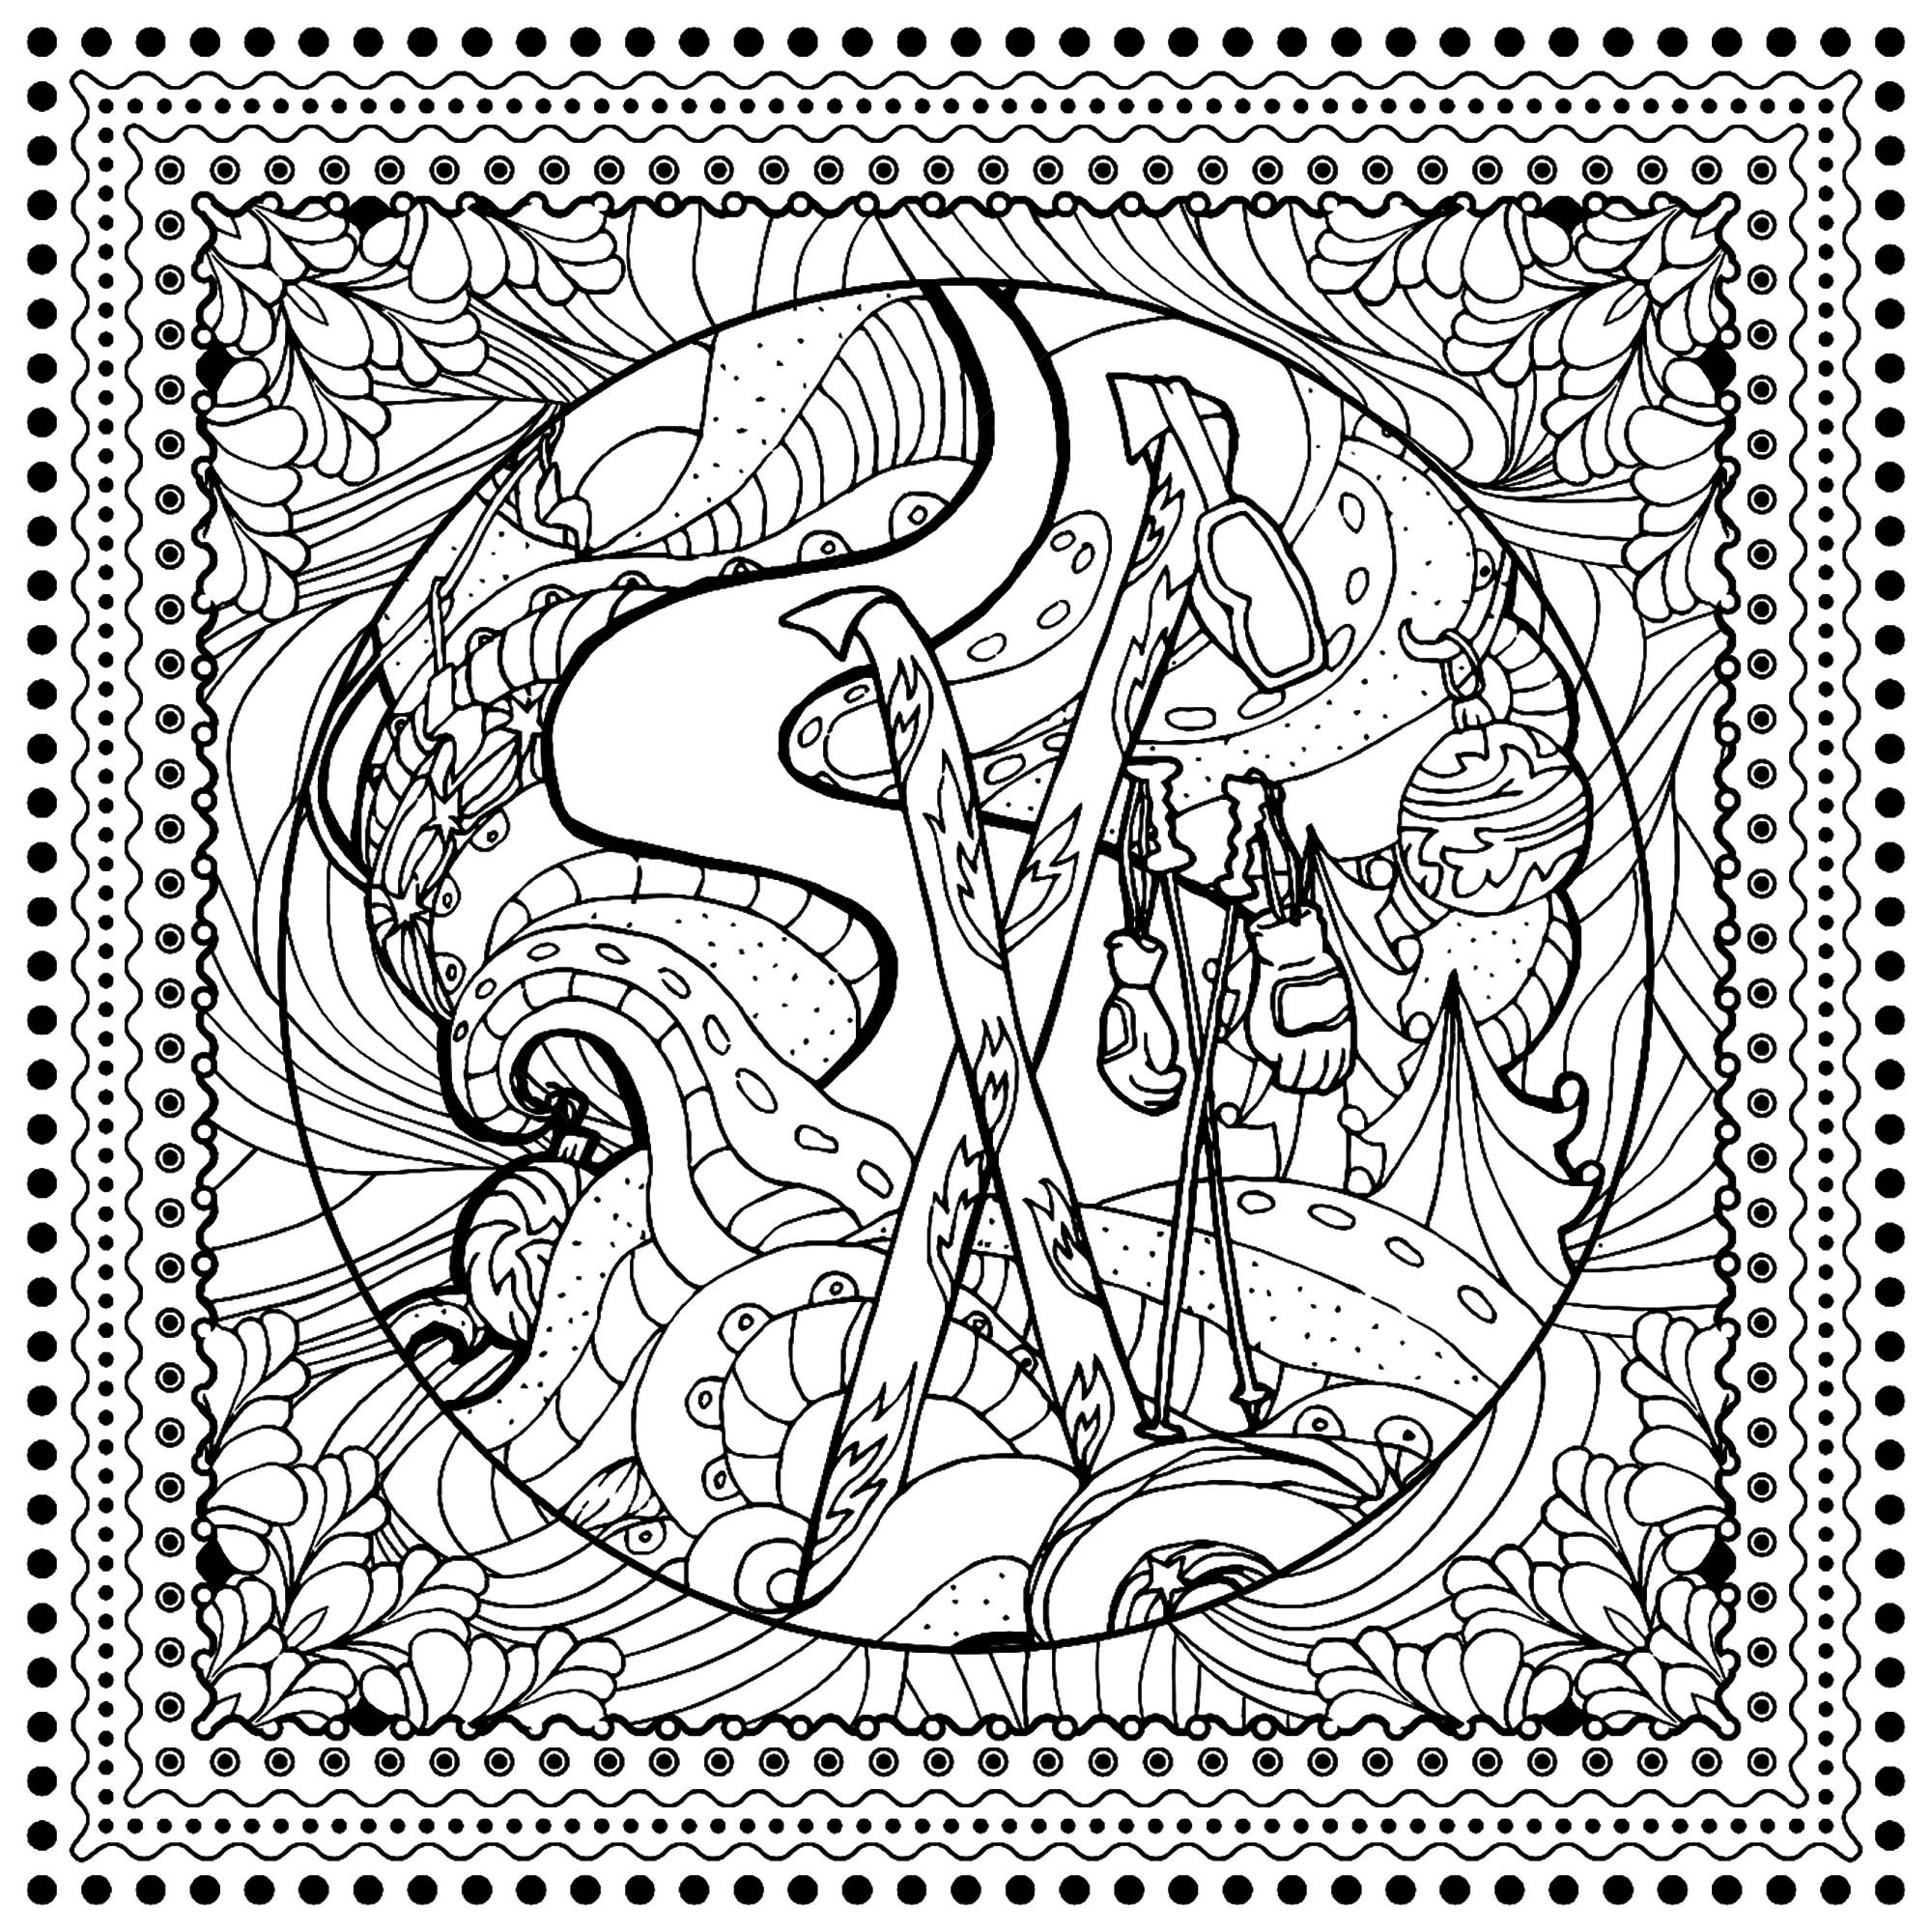 Winter Adult Coloring Pages  Winter sports ilonitta Christmas Adult Coloring Pages